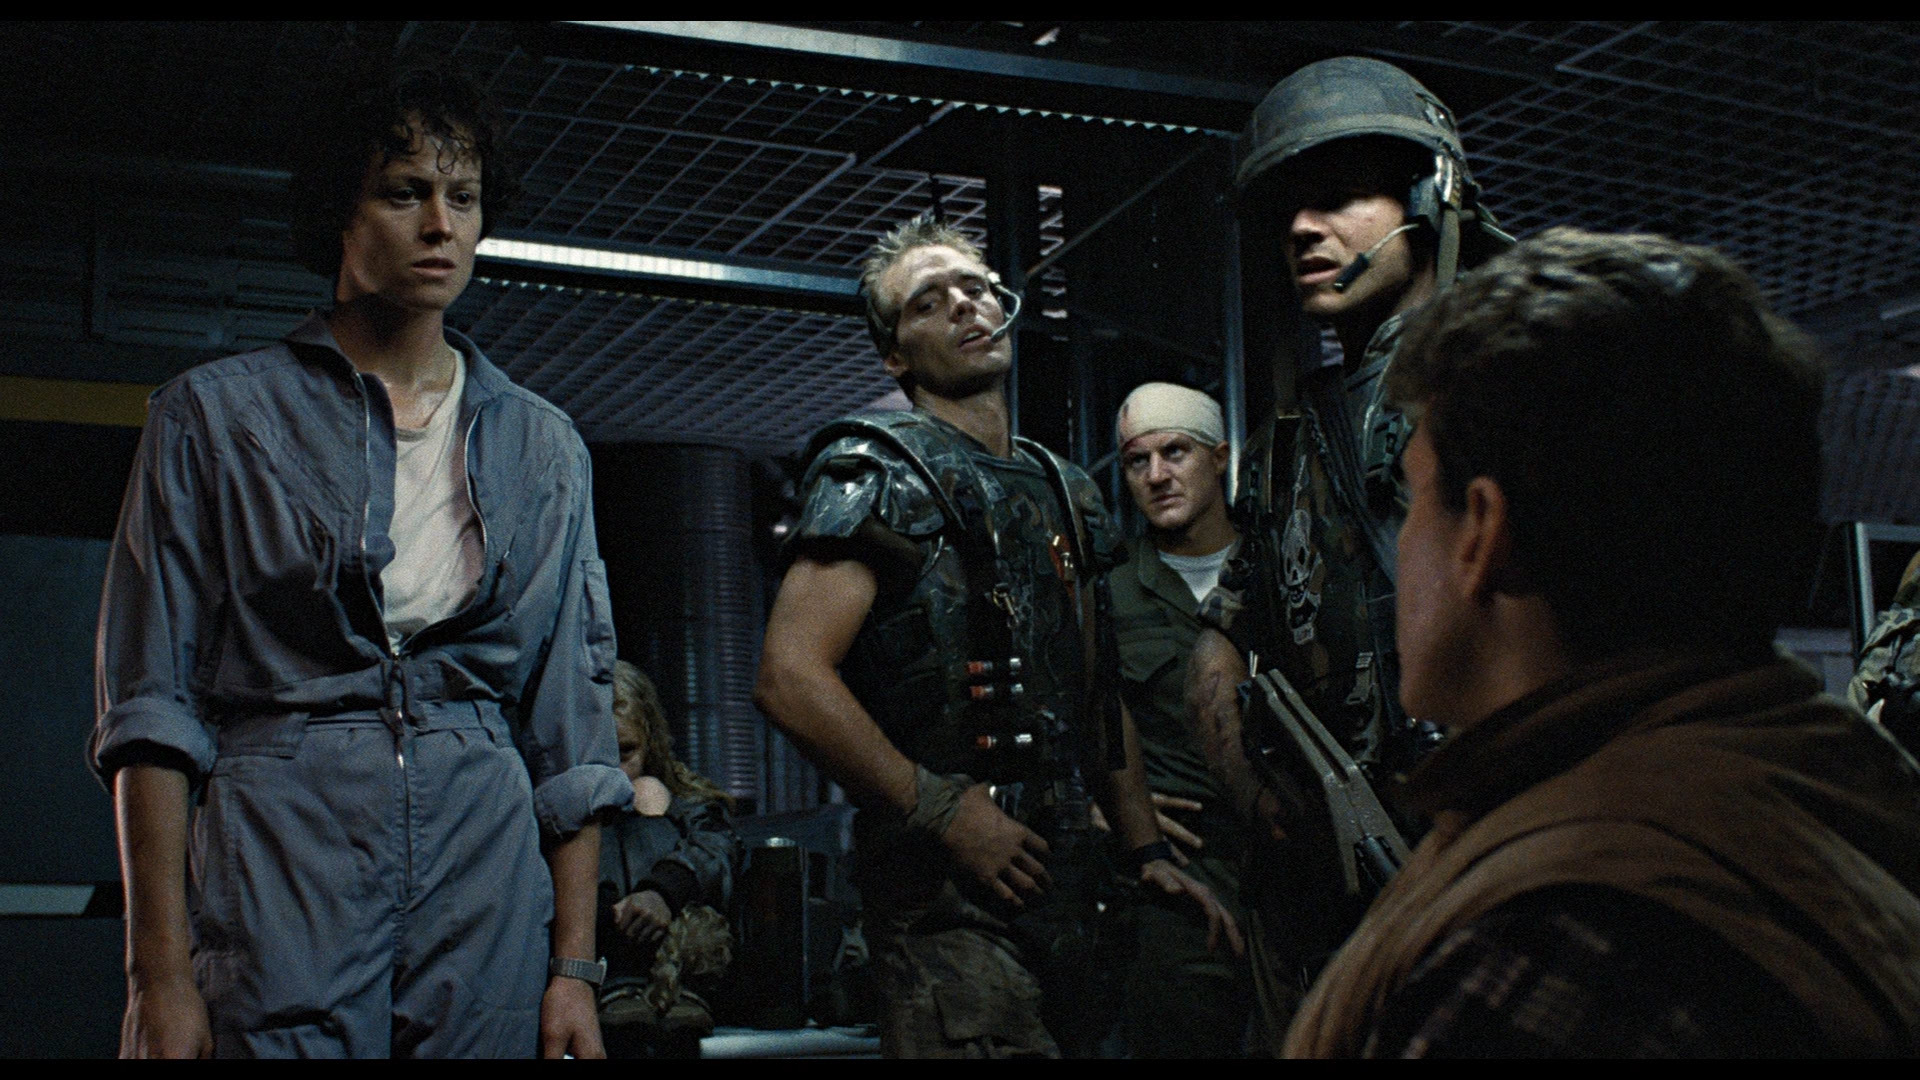 Ripley and men in Aliens